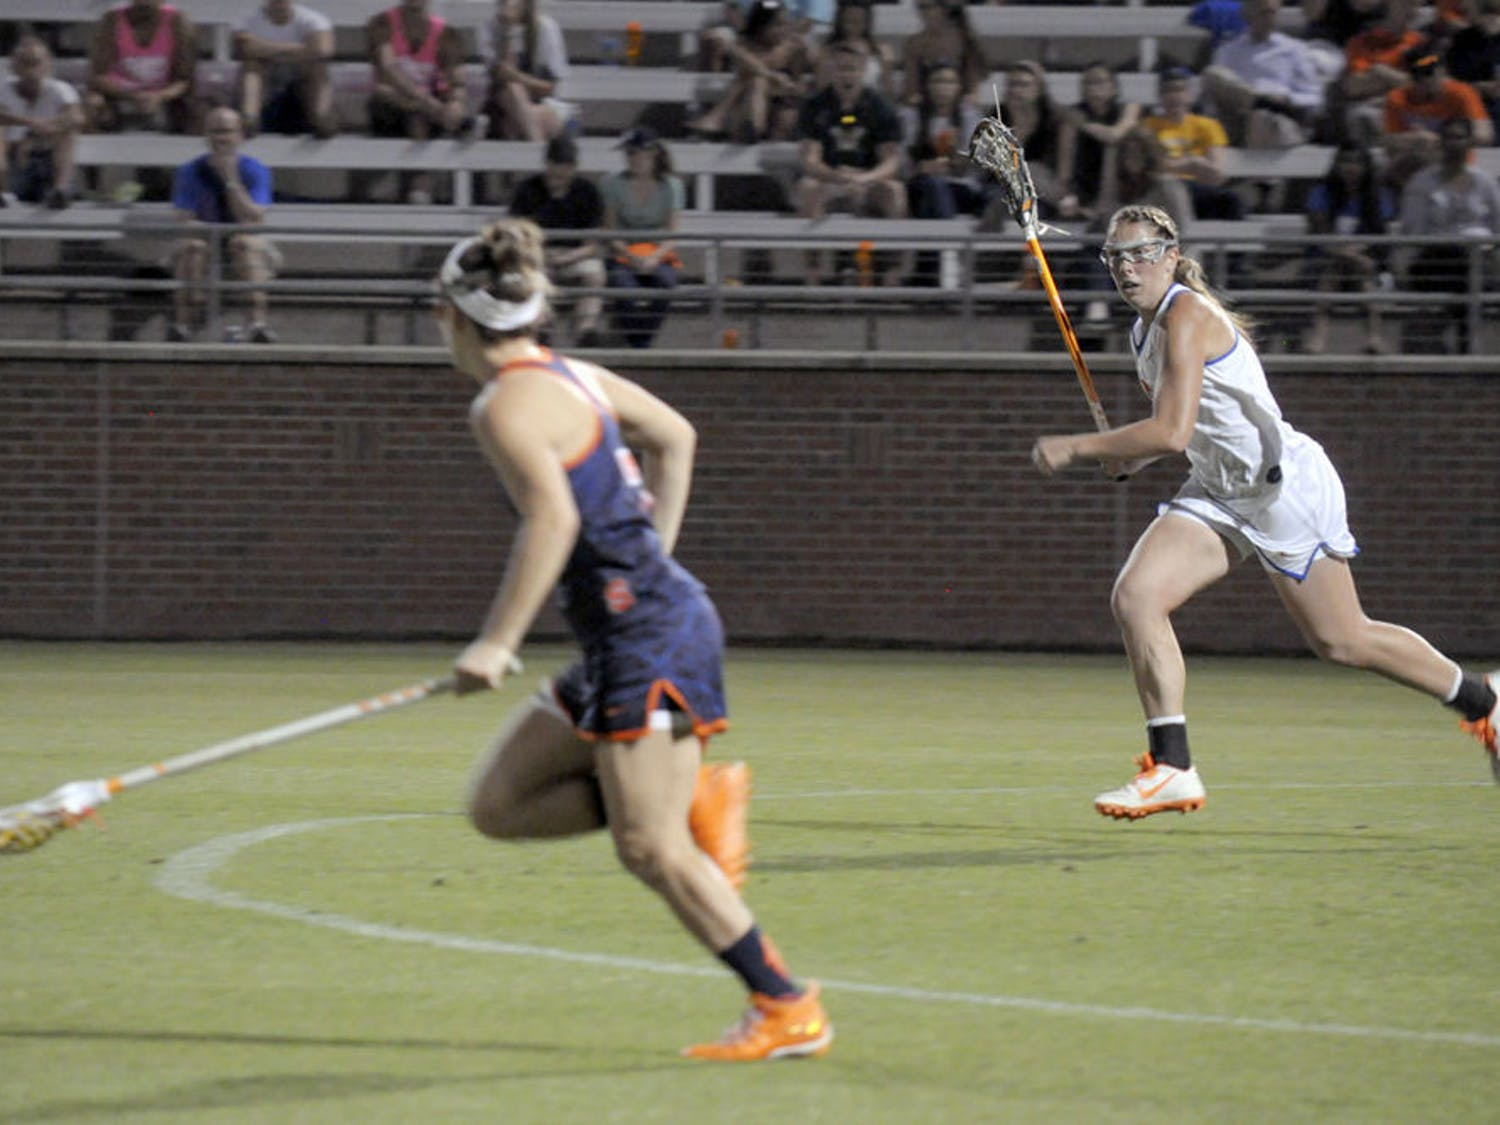 Shannon Gilroy runs down the field during Florida's 14-13 overtime loss to Syracuse on March 10 at Donald R. Dizney Stadium.